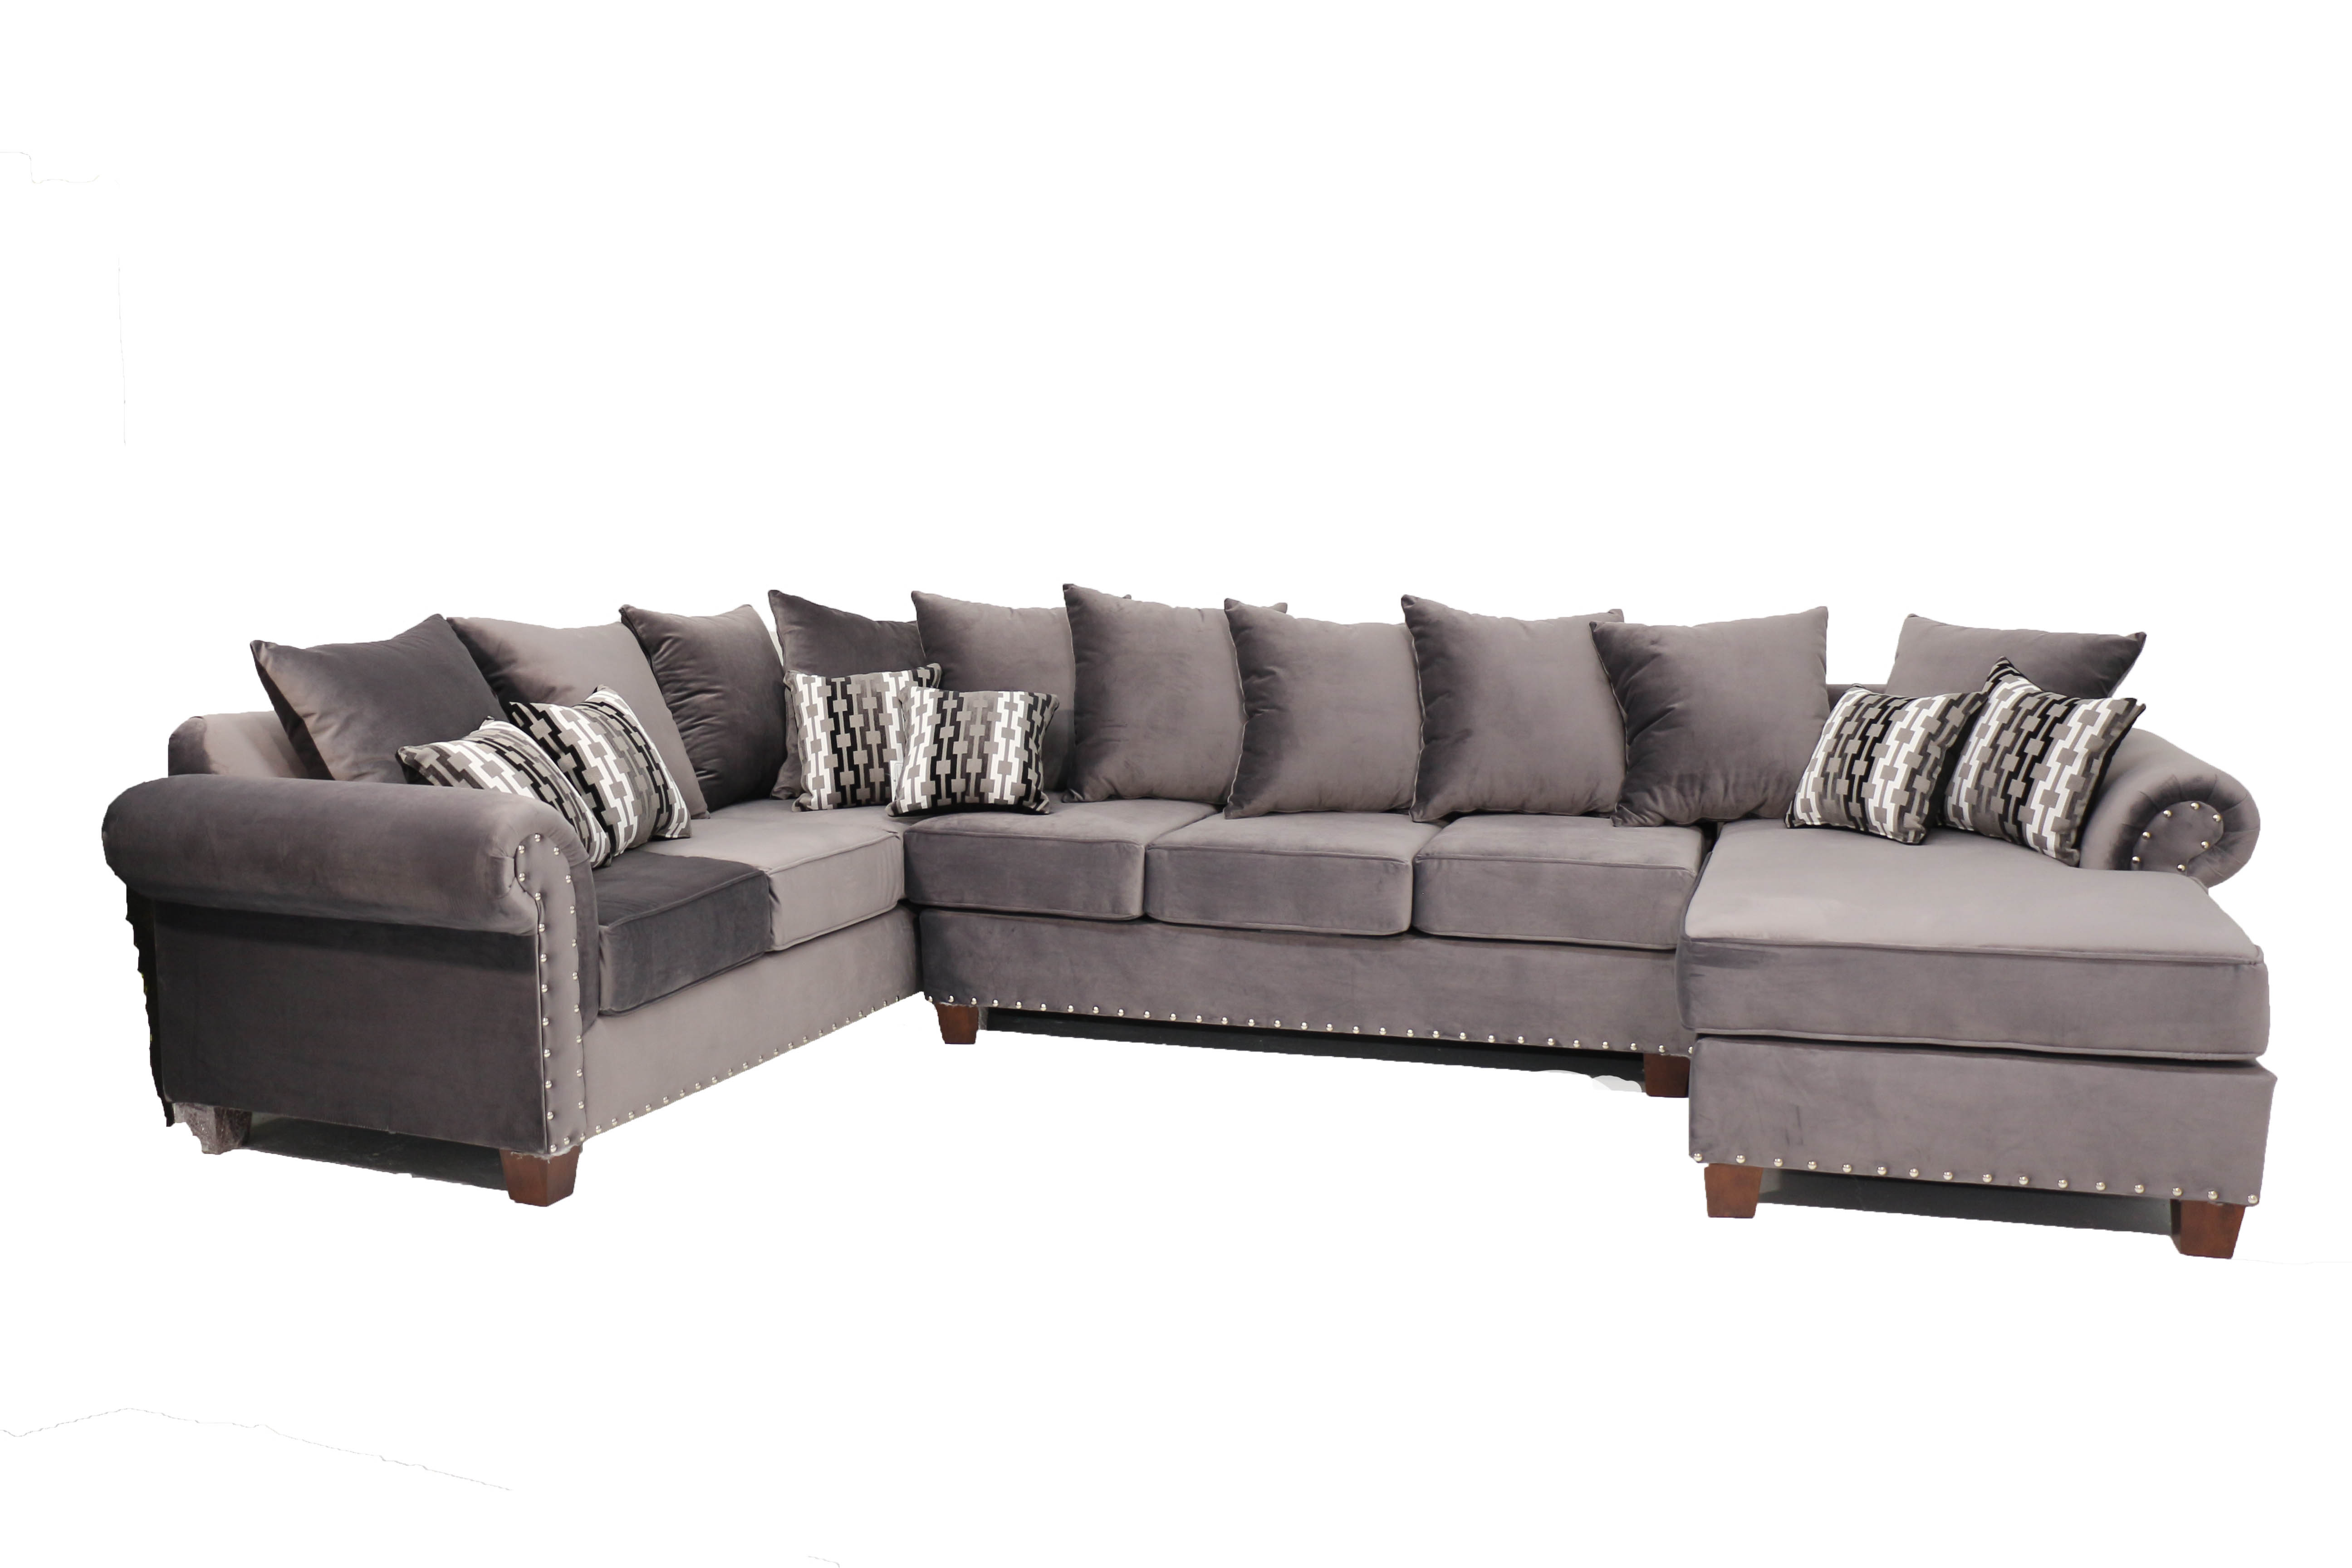 Brilliant Ez Grey Velvet Play Sectional With Chaise Andrewgaddart Wooden Chair Designs For Living Room Andrewgaddartcom